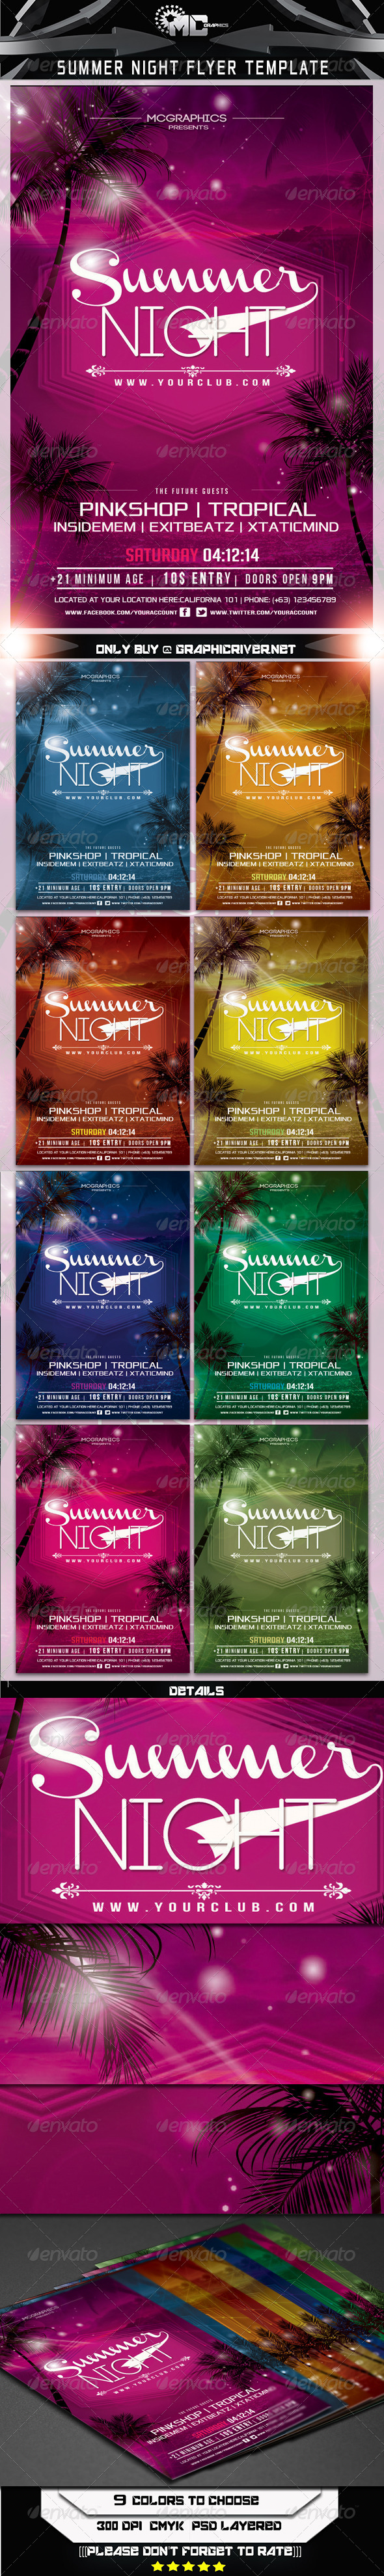 Summer Night Flyer Template - Events Flyers